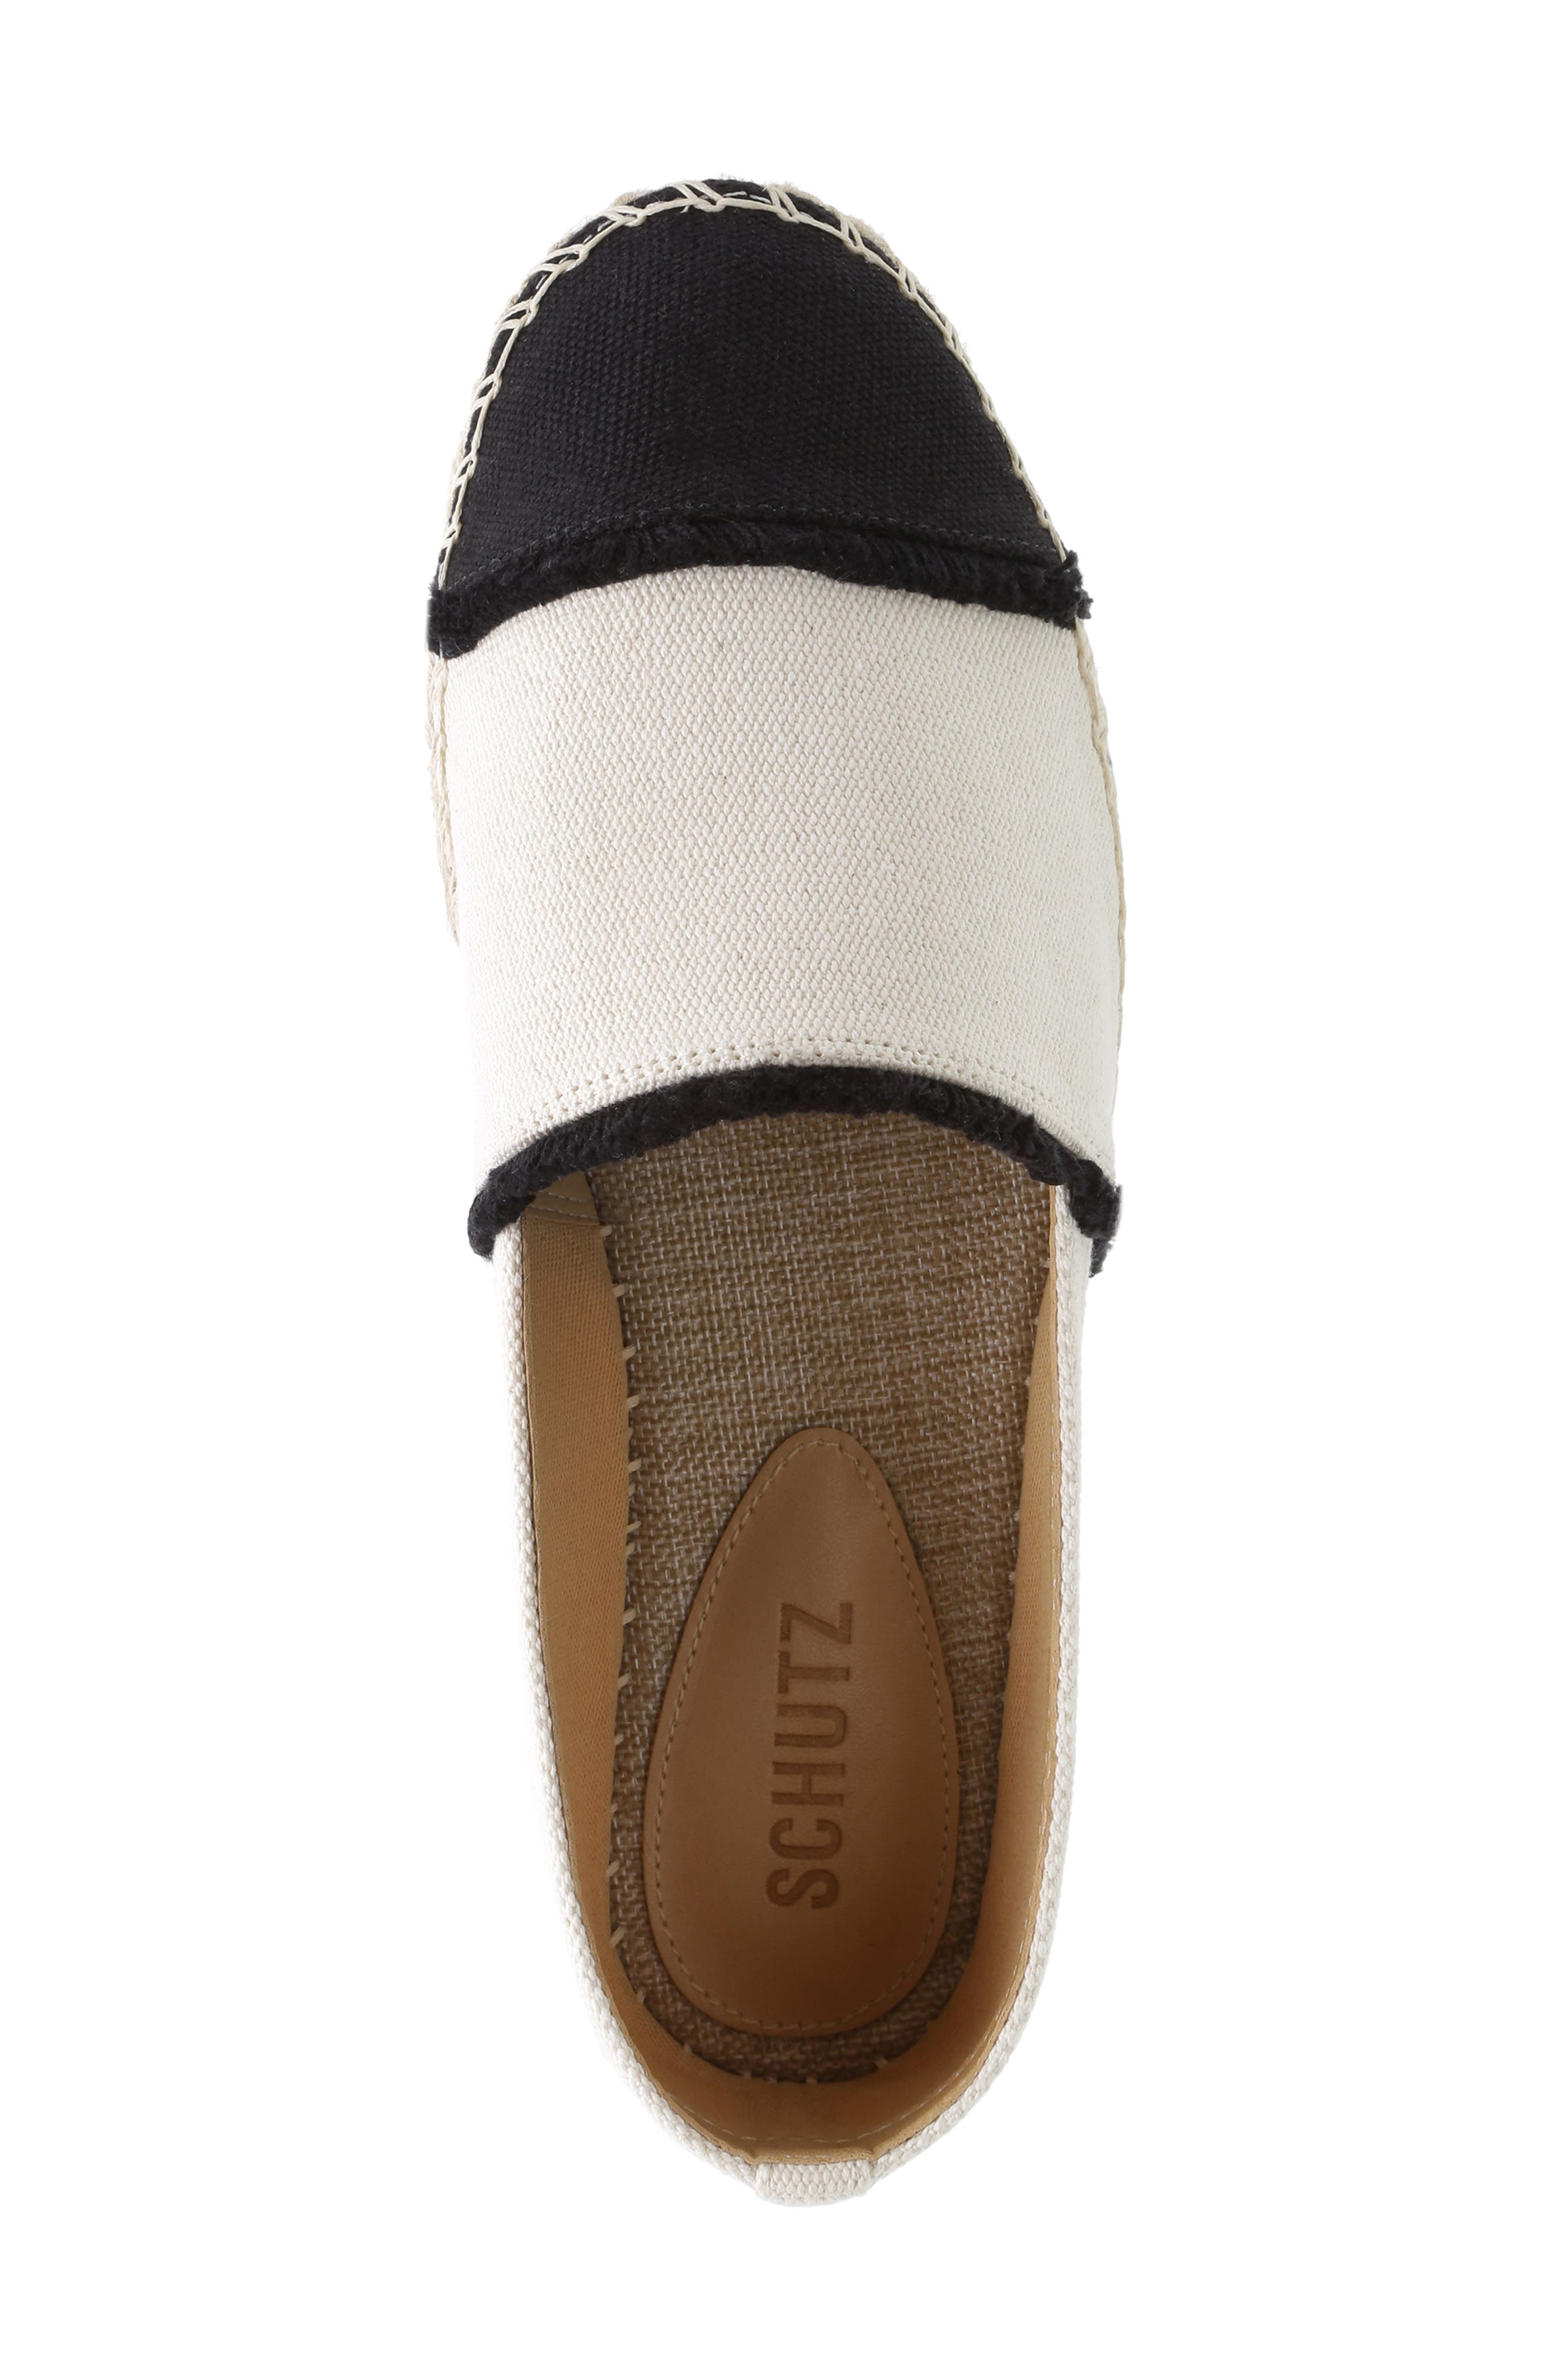 Ohanna Espadrille Flat,                             Alternate thumbnail 4, color,                             MULTI NEUTRO CANVAS